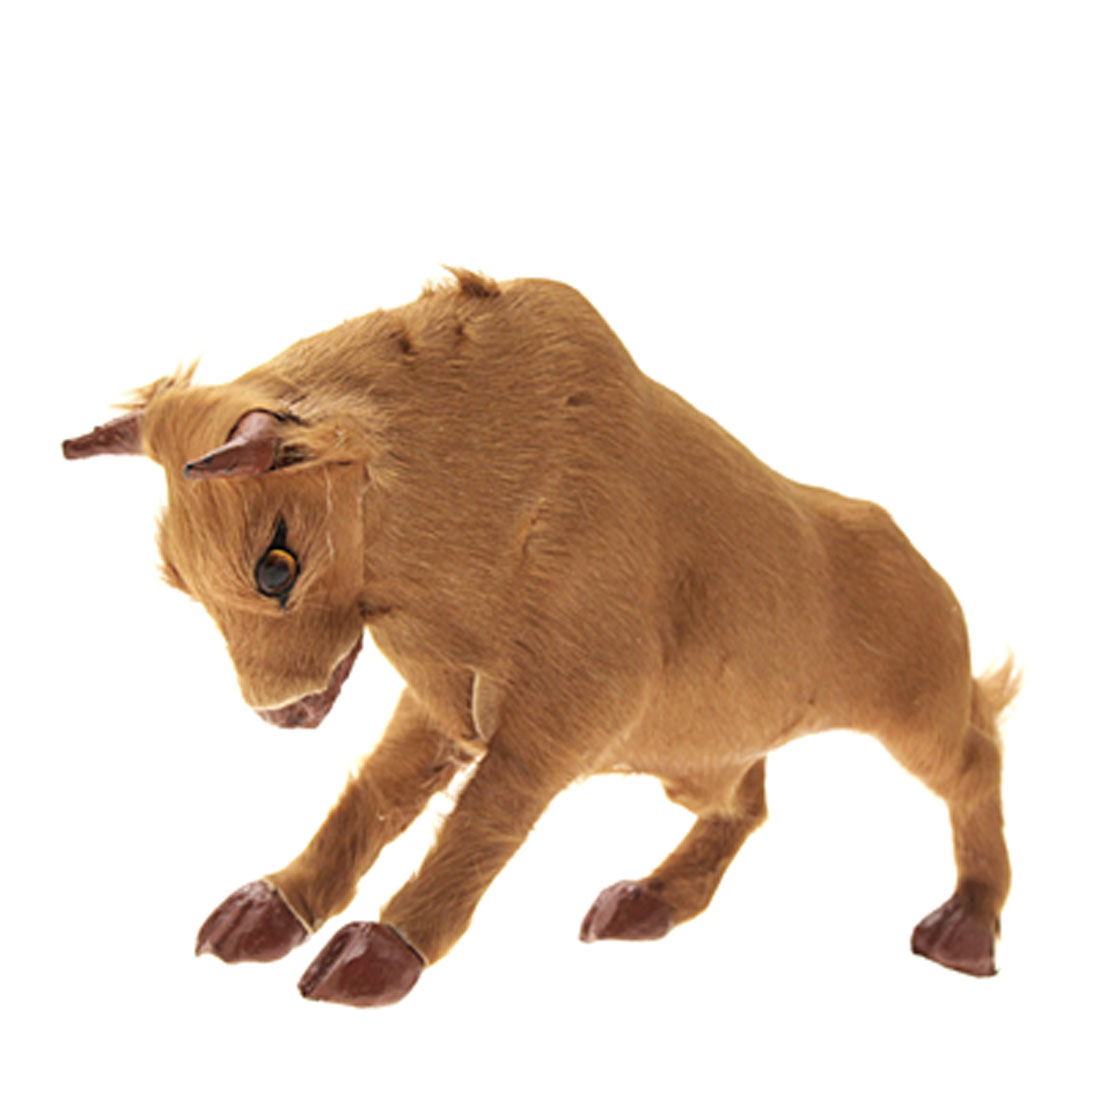 Cattle Furry Plush Toy Stuffed Animal Desk Ornament